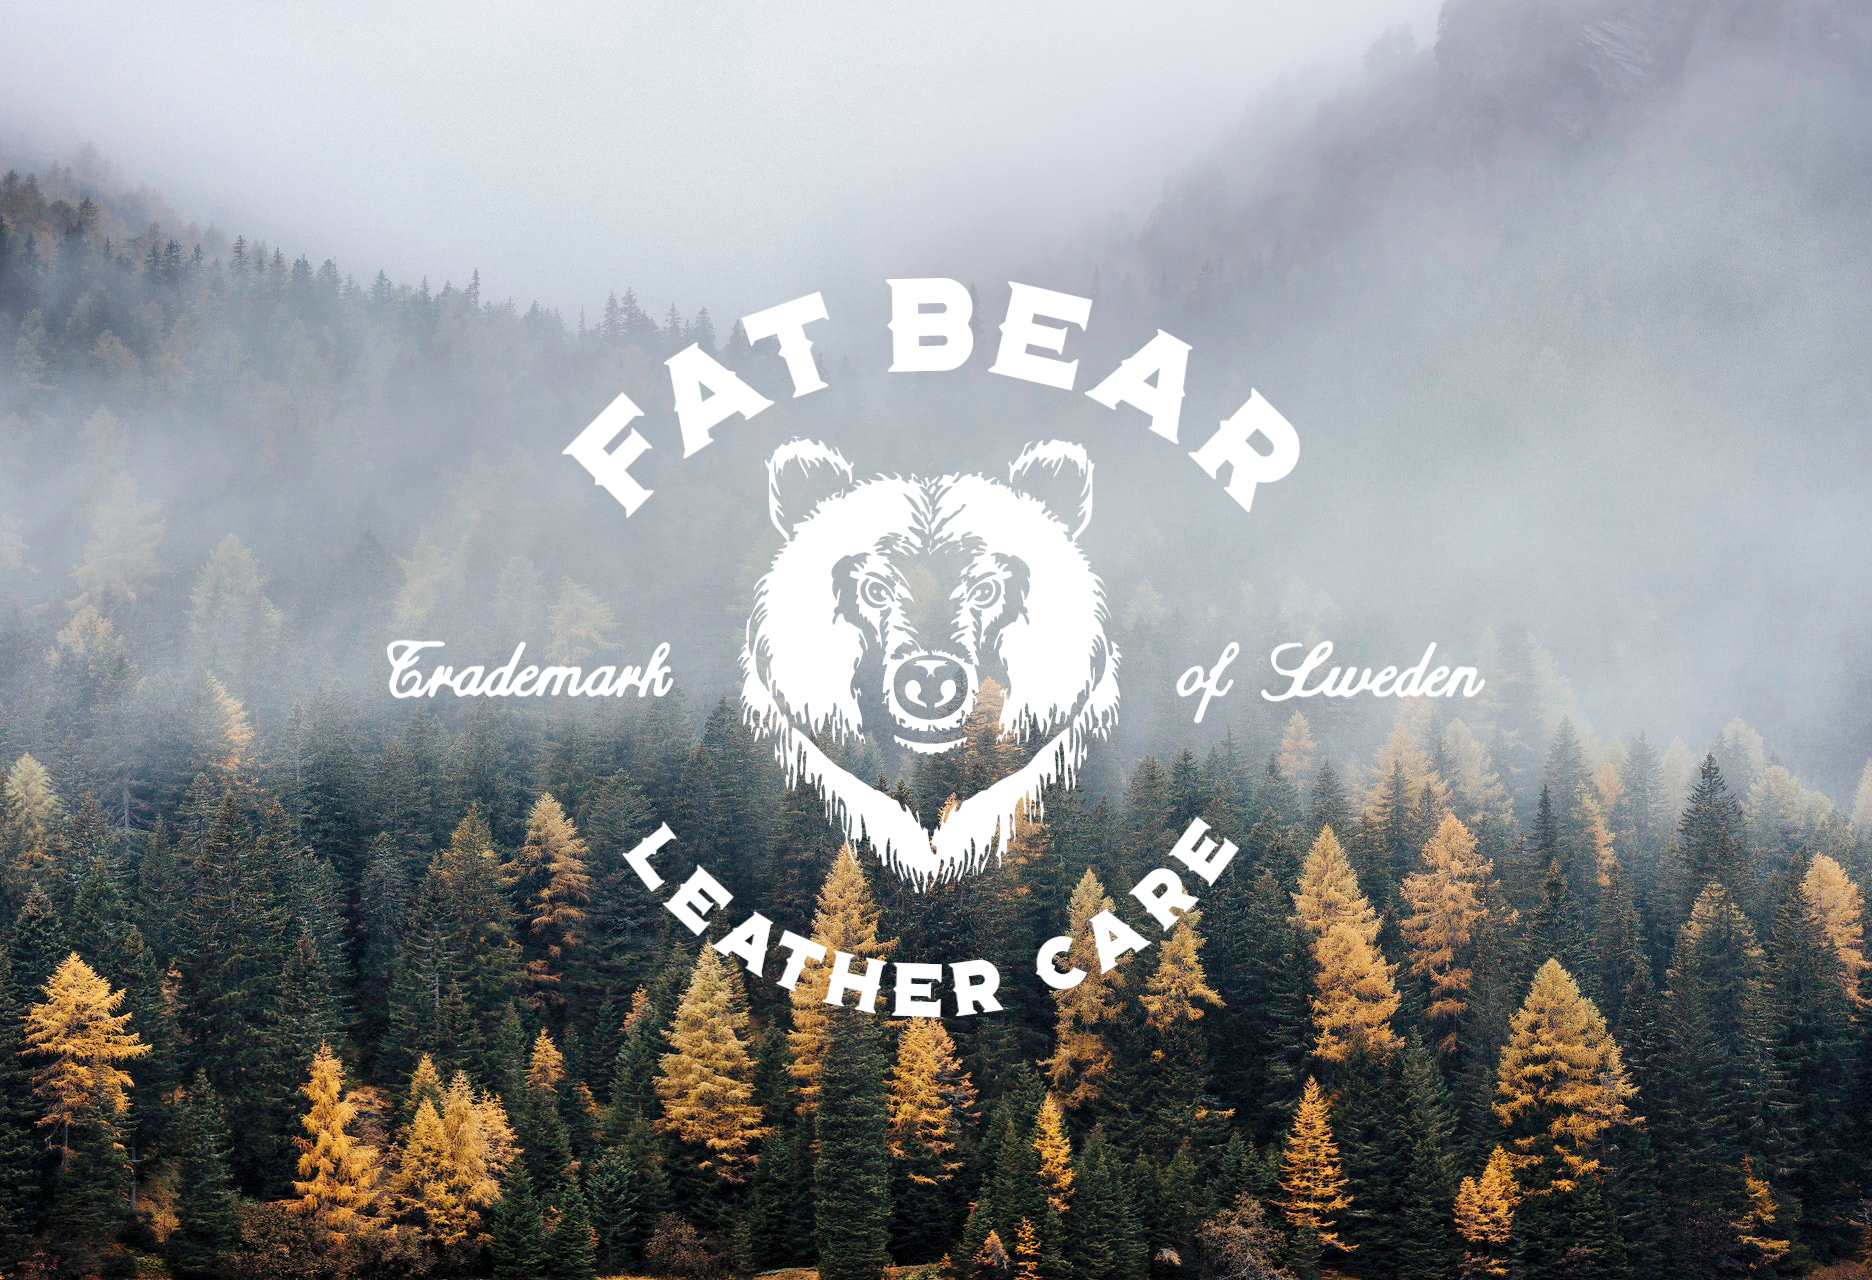 FAT BEAR TEAM TYSKLAND — fatbear.de